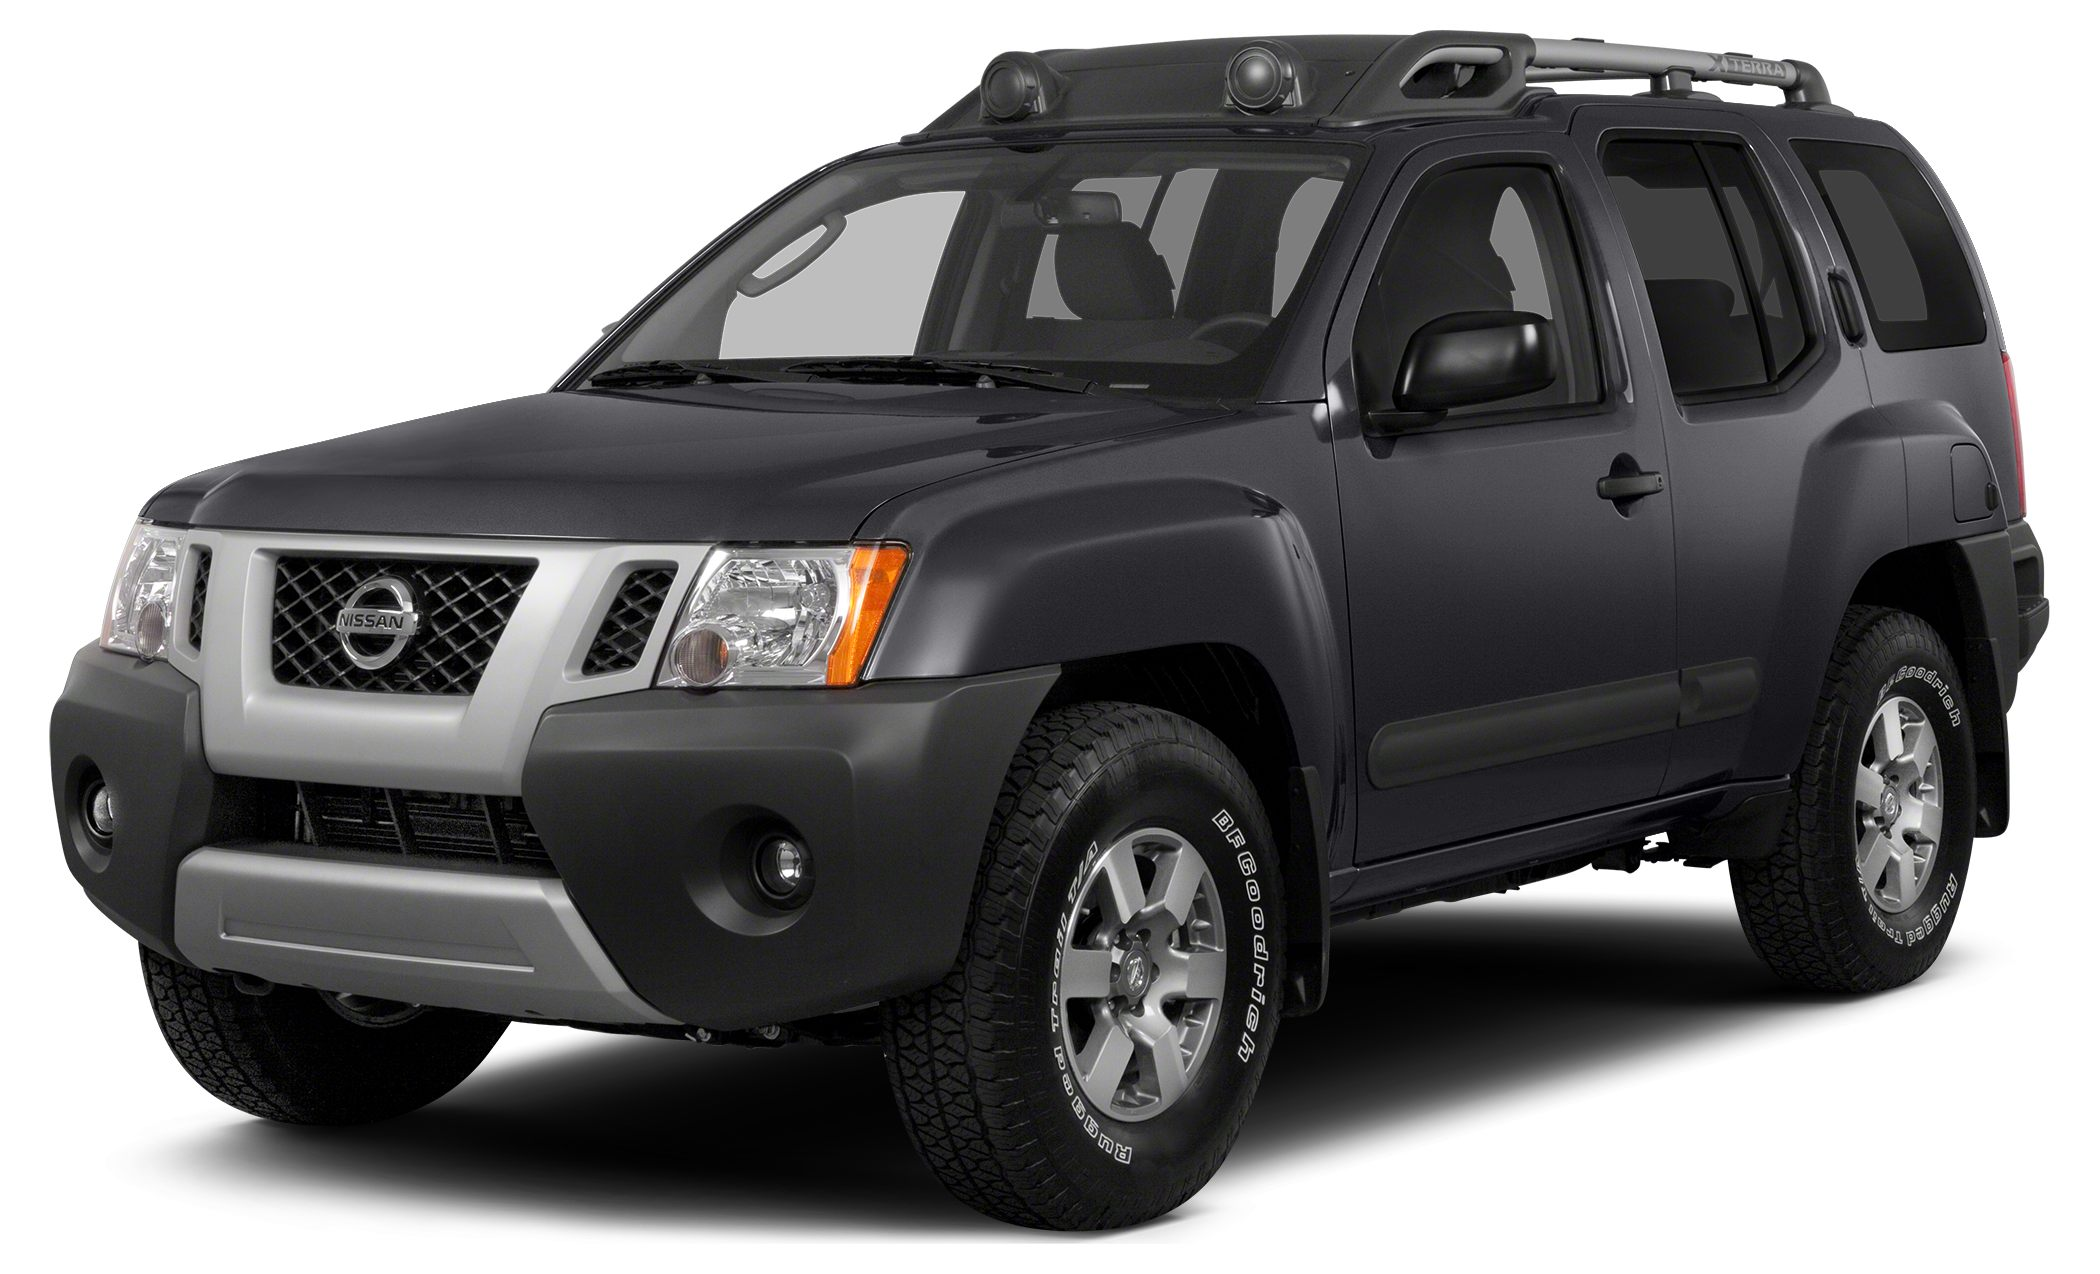 2015 Nissan Xterra S The Xterra is a remarkable vehicle from its edgy appearance to its devoted fol